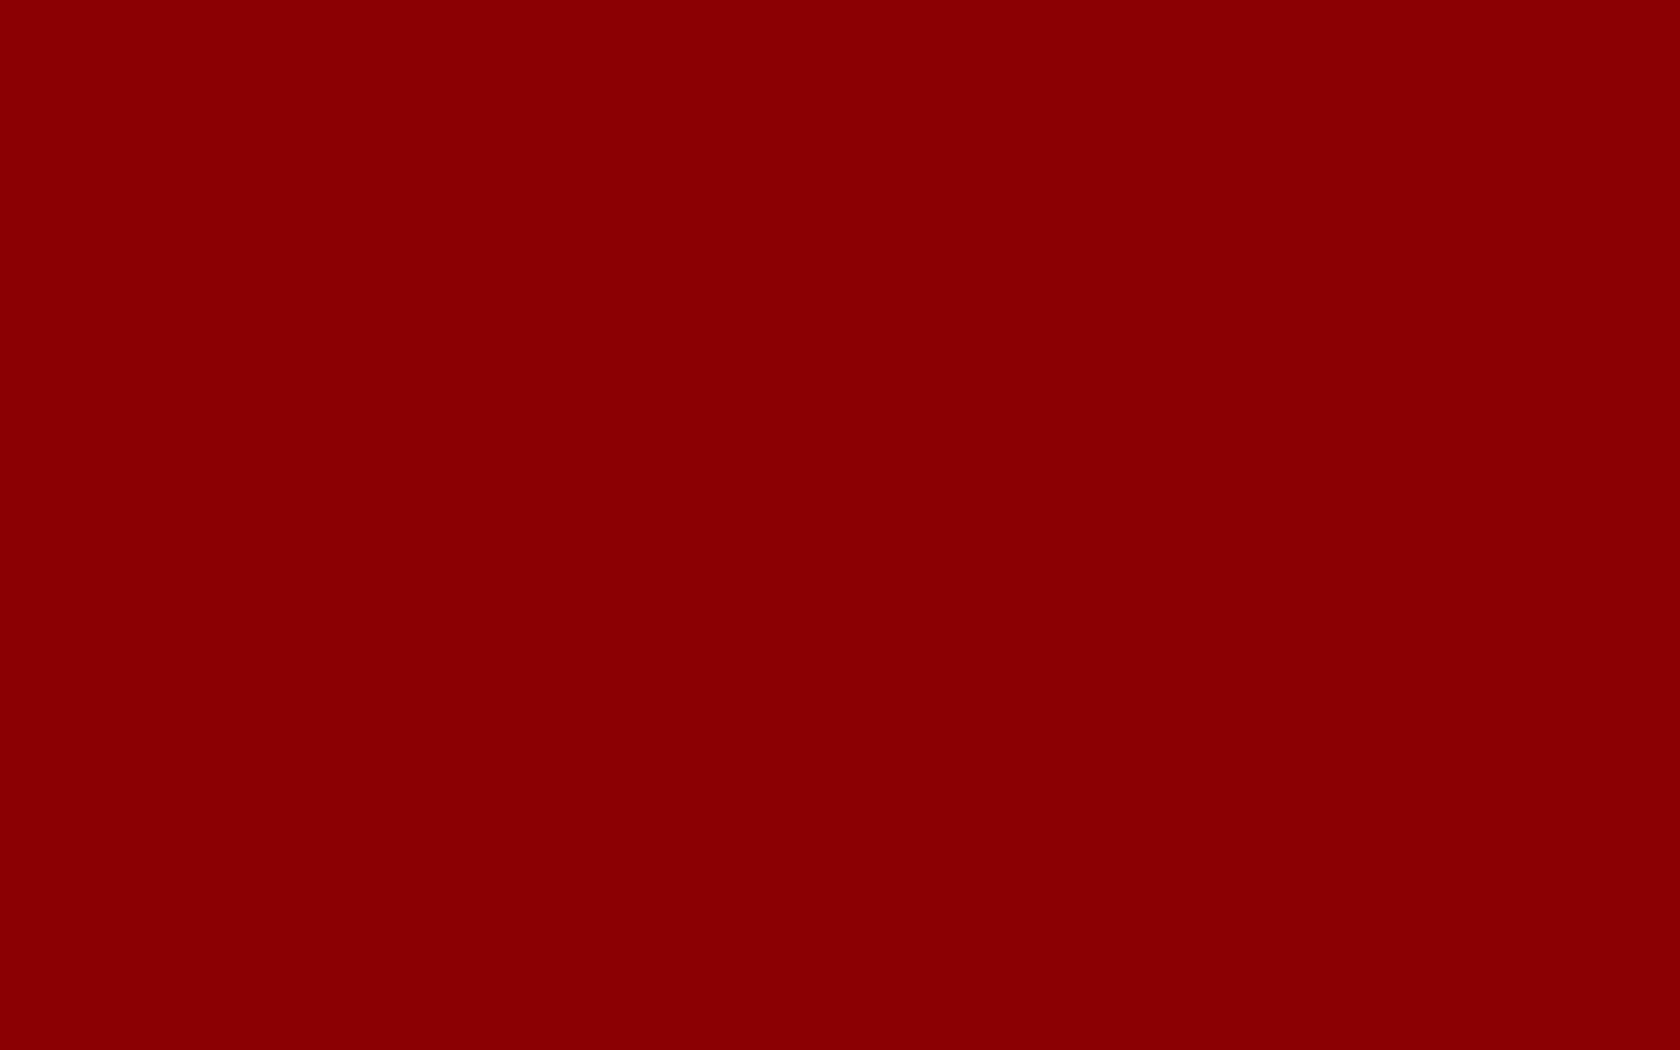 1680x1050 Dark Red Solid Color Background